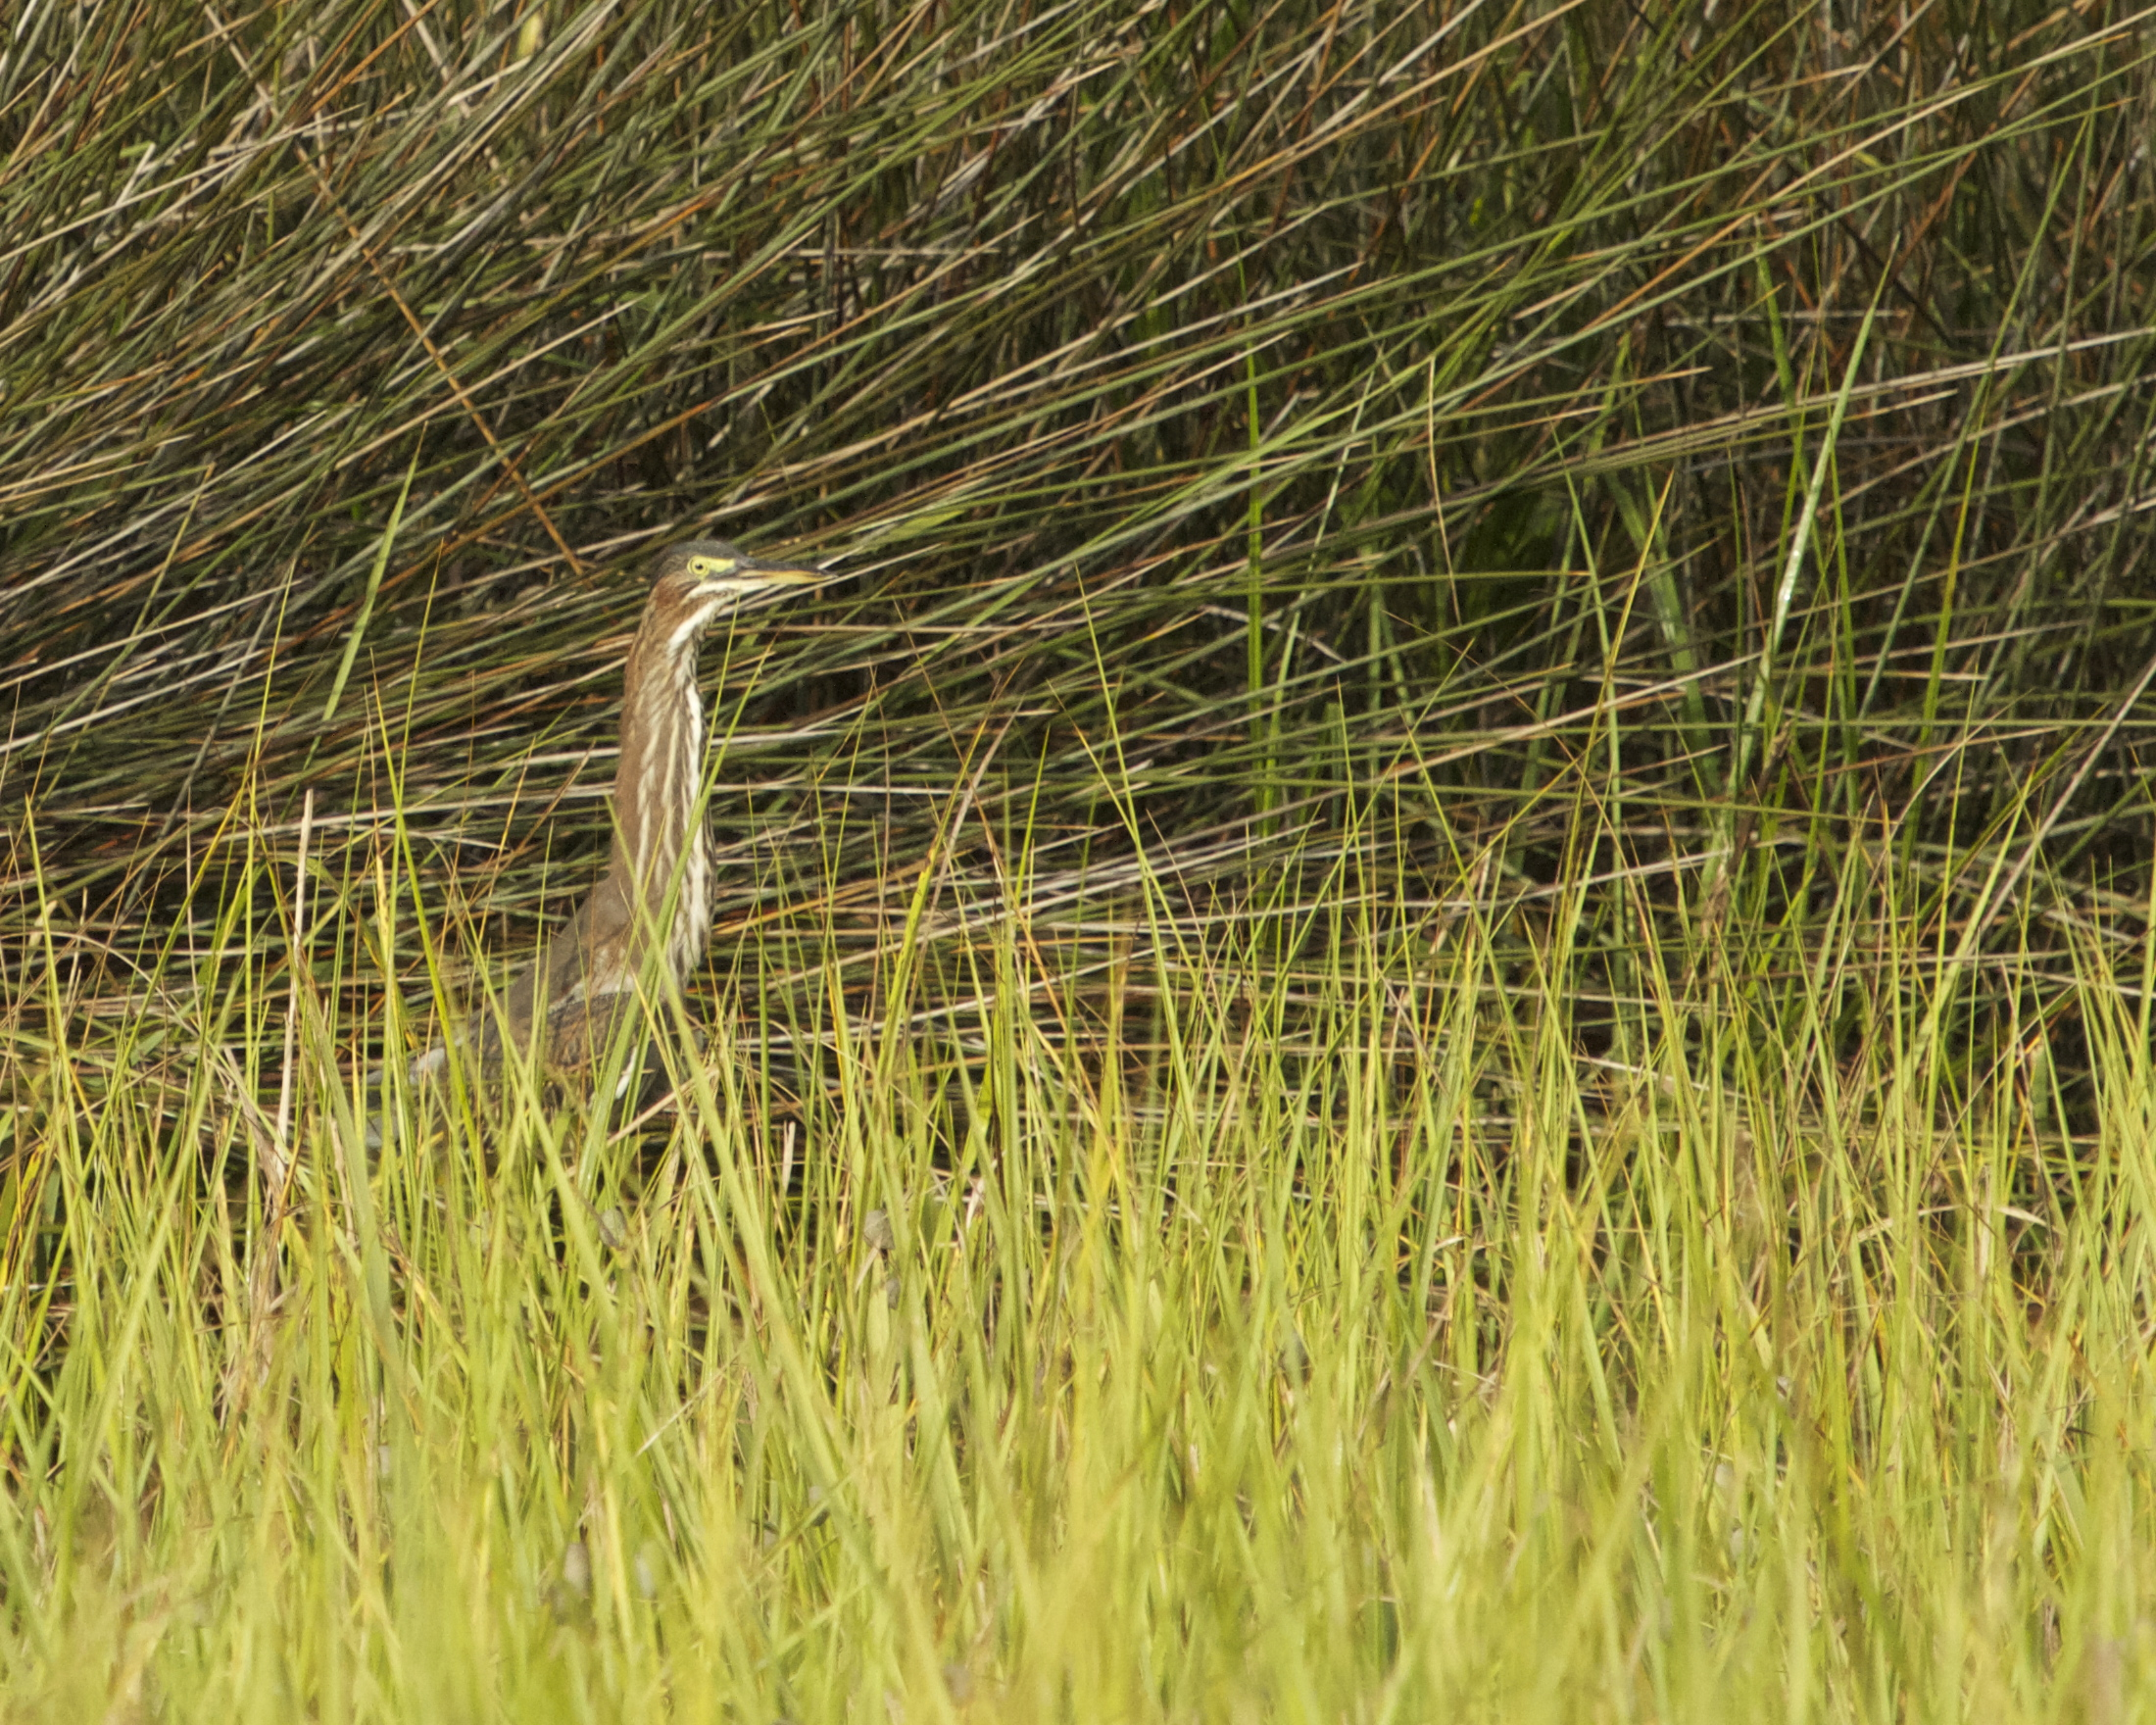 The Green Heron is hard to distinguish from the marsh grass.